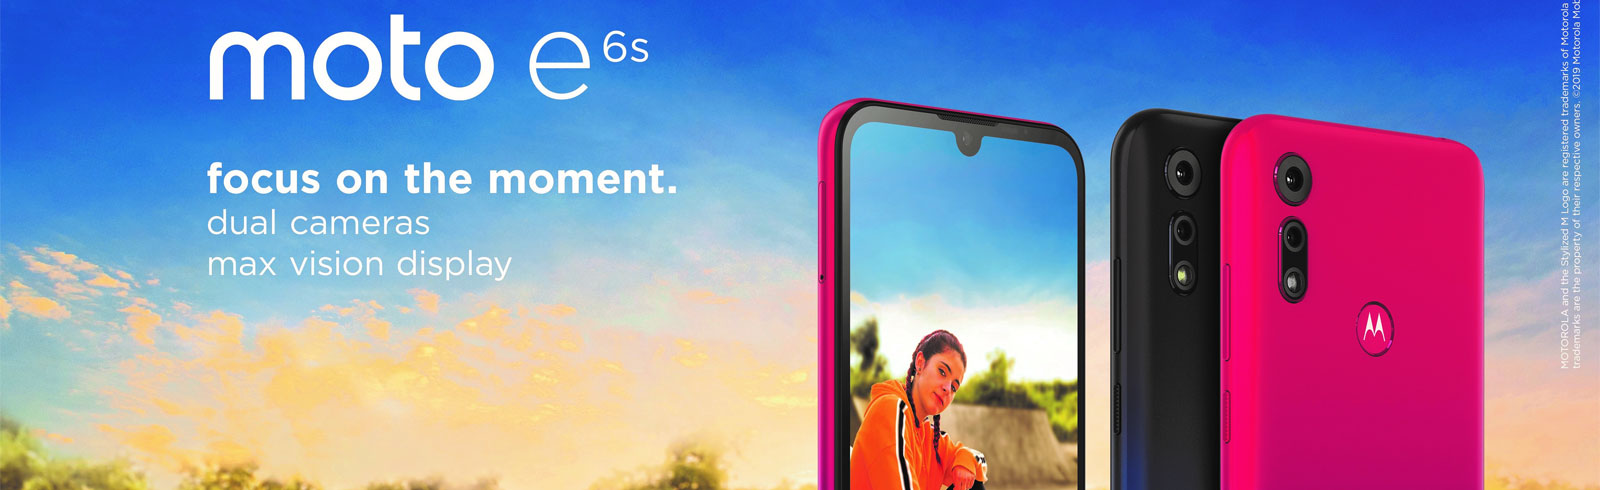 Motorola launches the Moto e6s (2020) - a toned down version of the Moto e6s (2019)